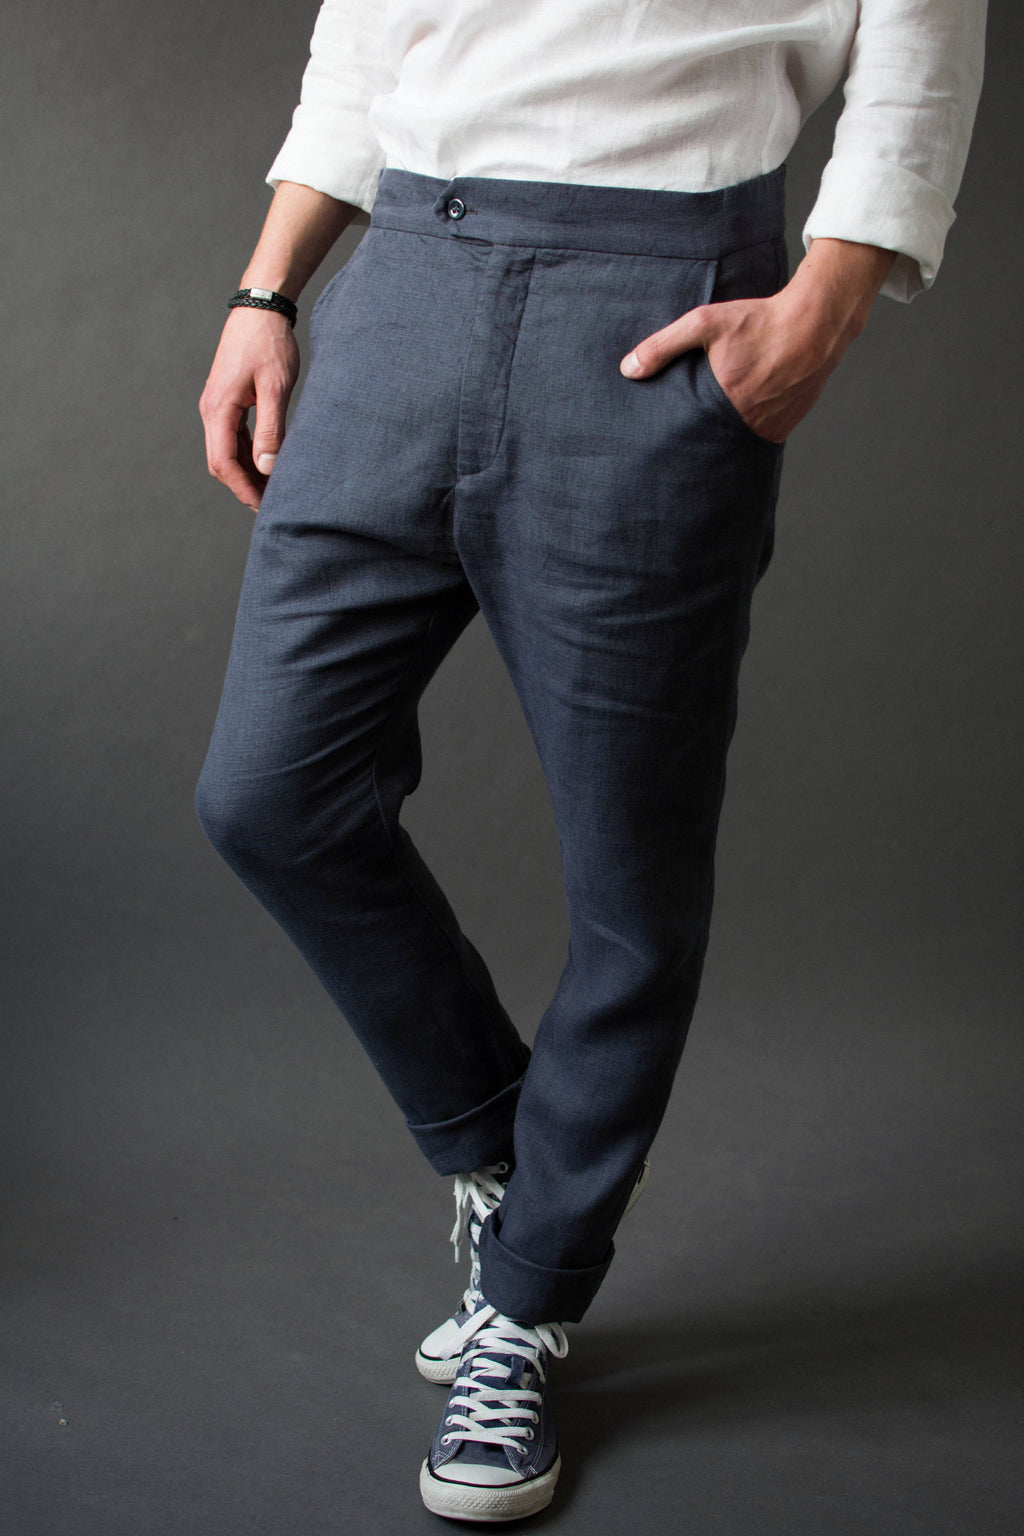 Men's casual linen pants, Linen wedding pants, Men's chino trousers, Tapered pants - VA2DU